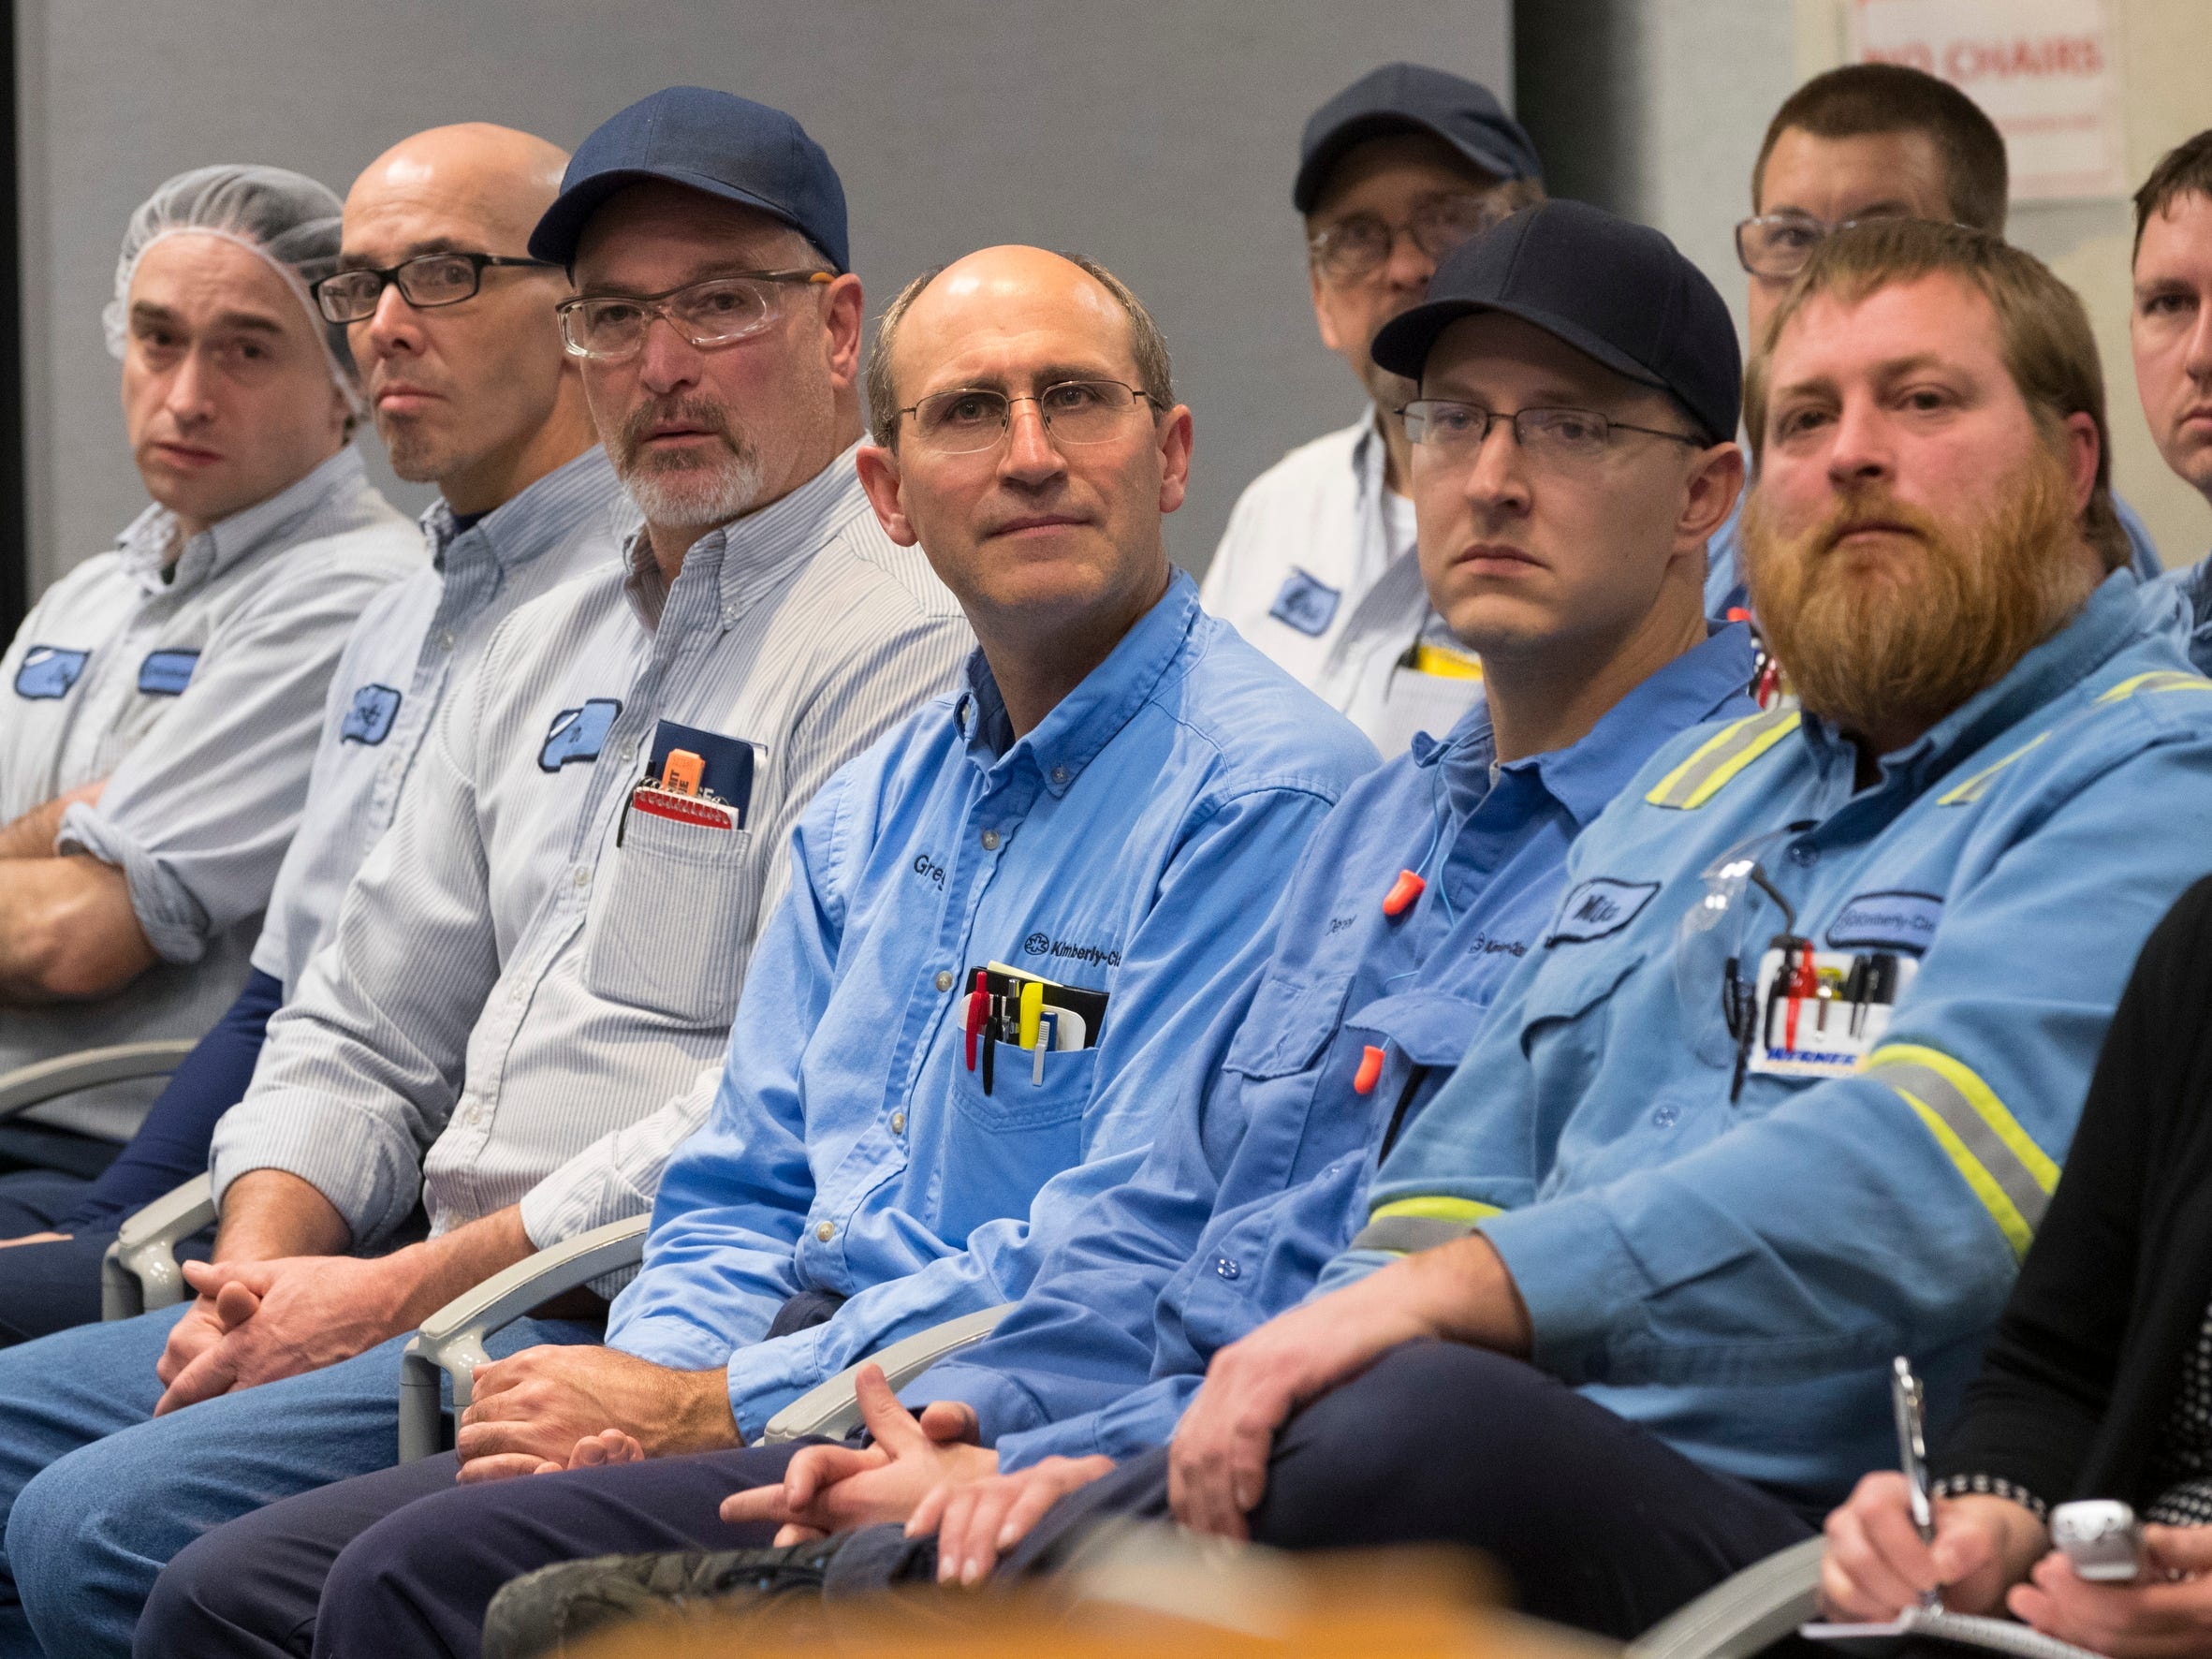 Workers listen to Gov. Scott Walker speak about a deal to keep their plant open Thursday at Kimberly Clark's Cold Spring plant.